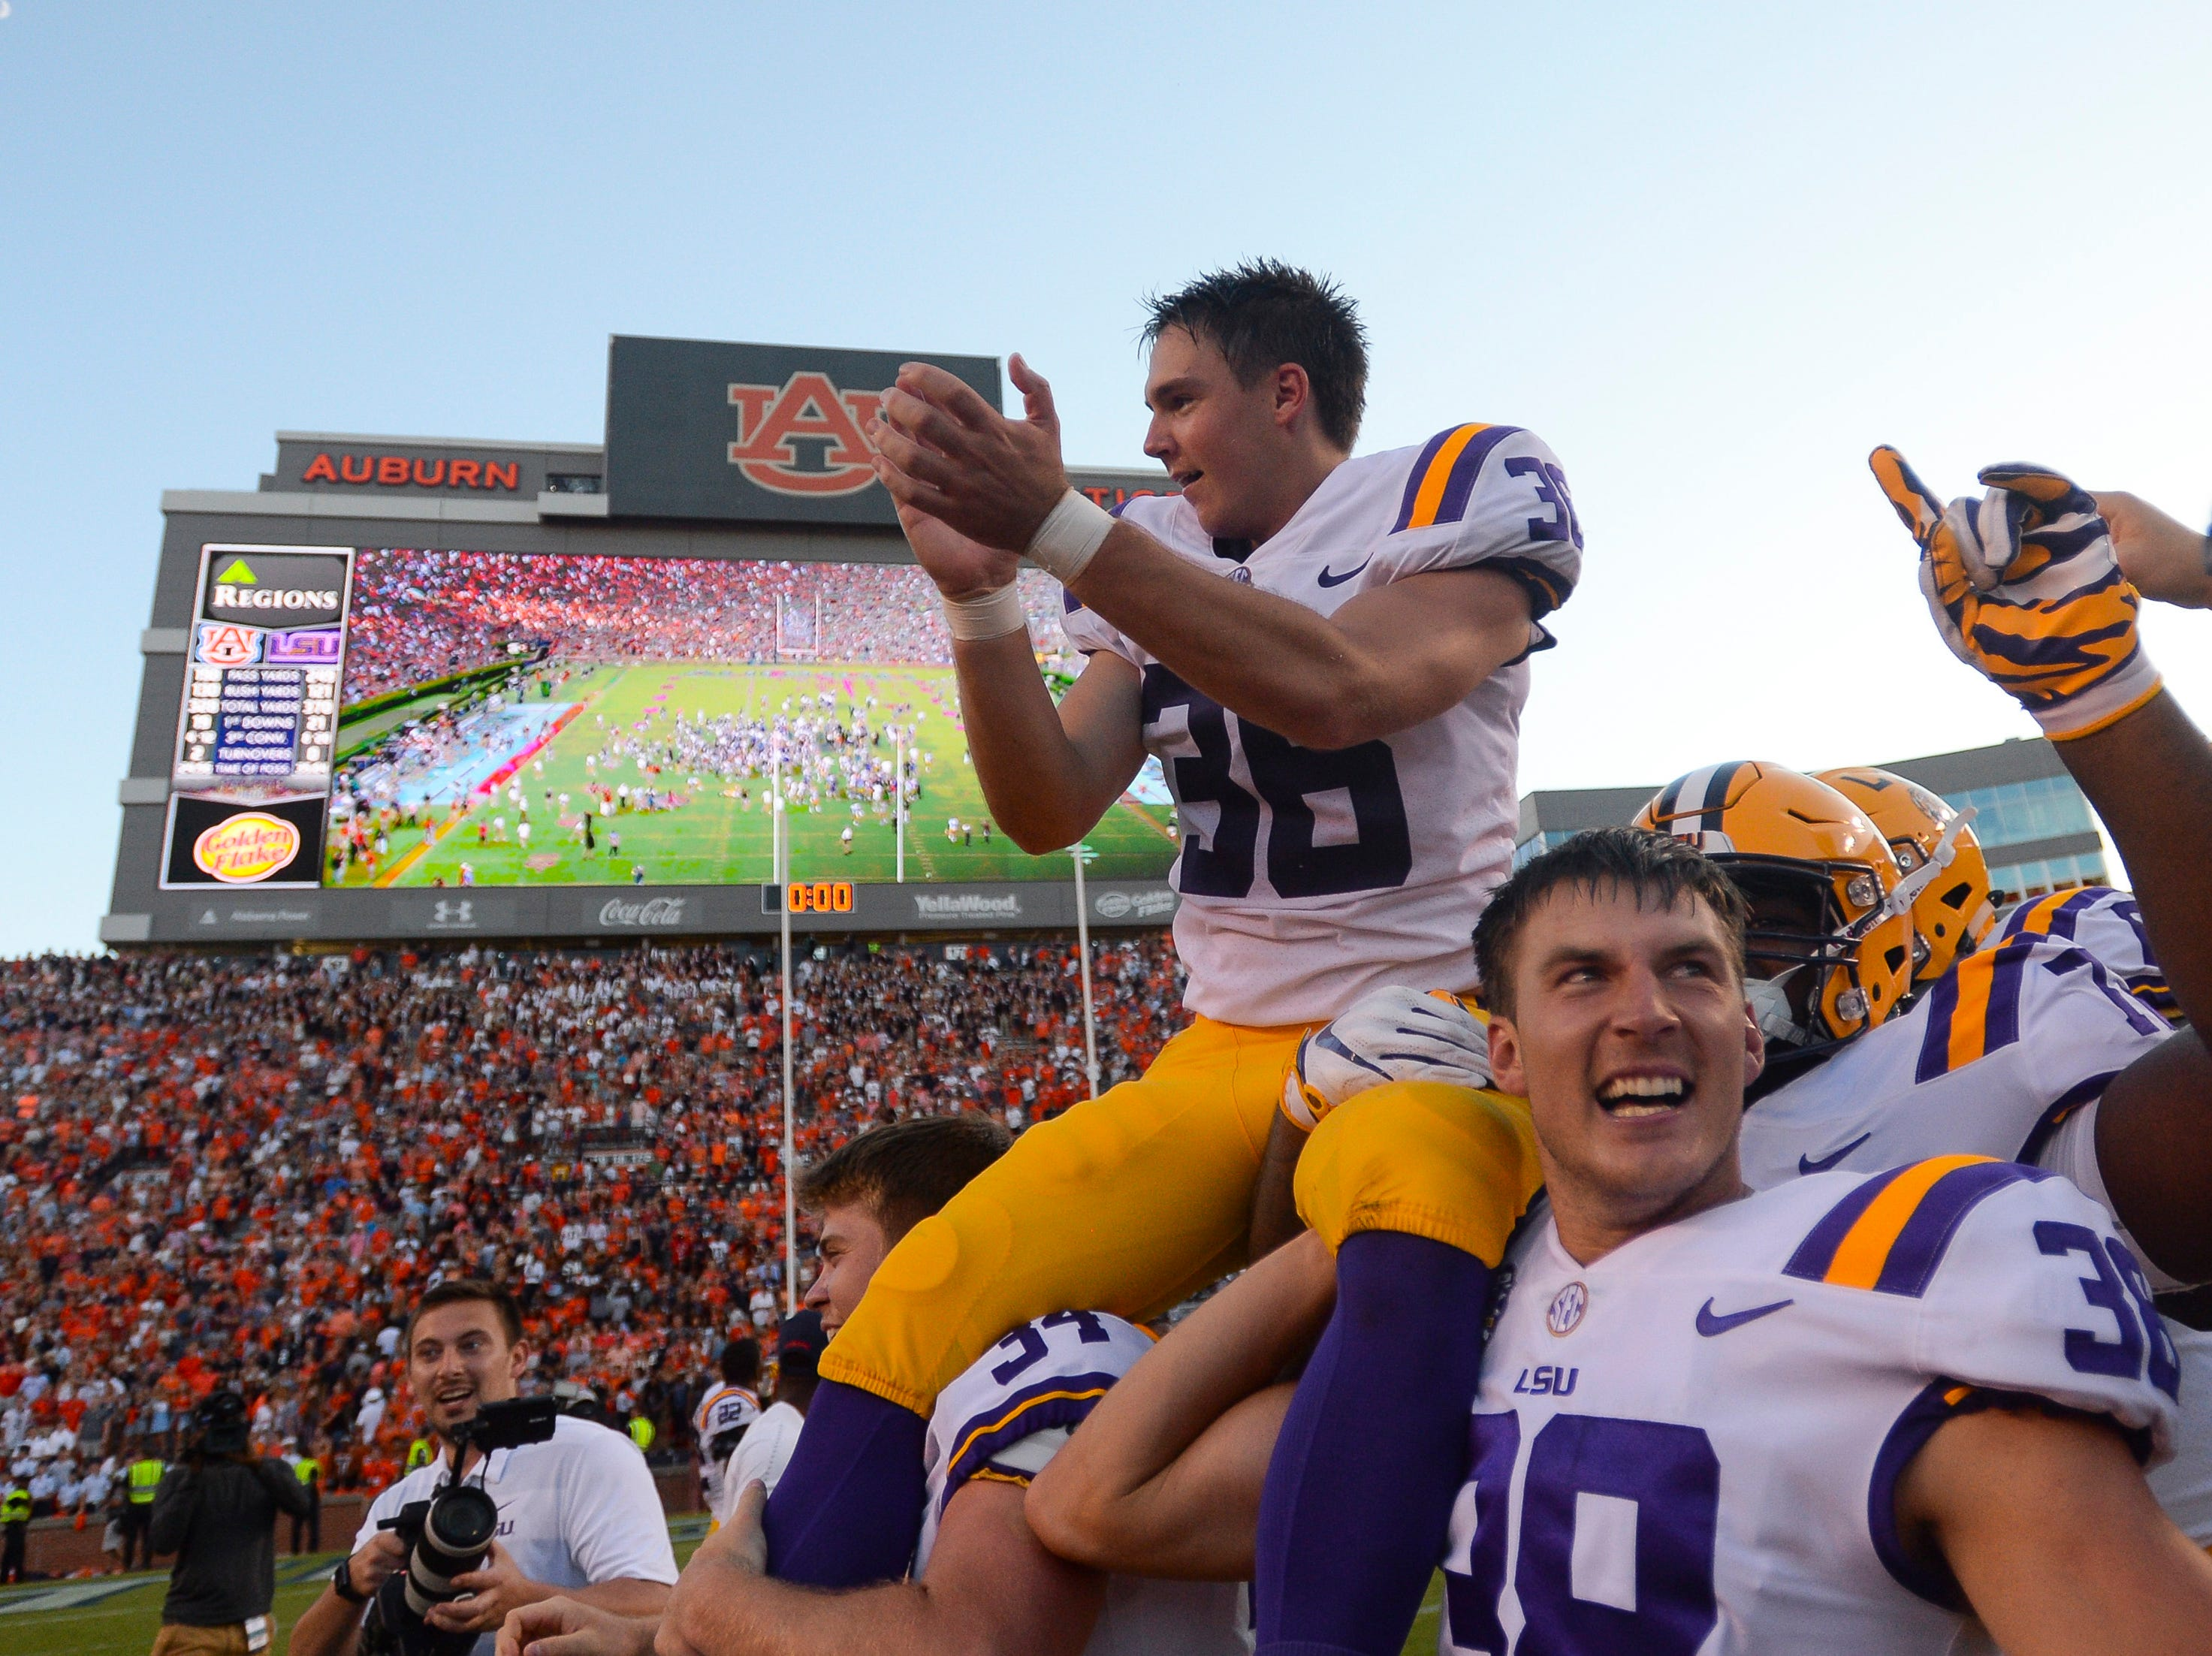 Sep 15, 2018; Auburn, AL, USA; LSU Tigers place kicker Cole Tracy (36) celebrates after kicking the game-winning field goal to defeat the Auburn Tigers 22-21 at Jordan-Hare Stadium. Mandatory Credit: Julie Bennett-USA TODAY Sports